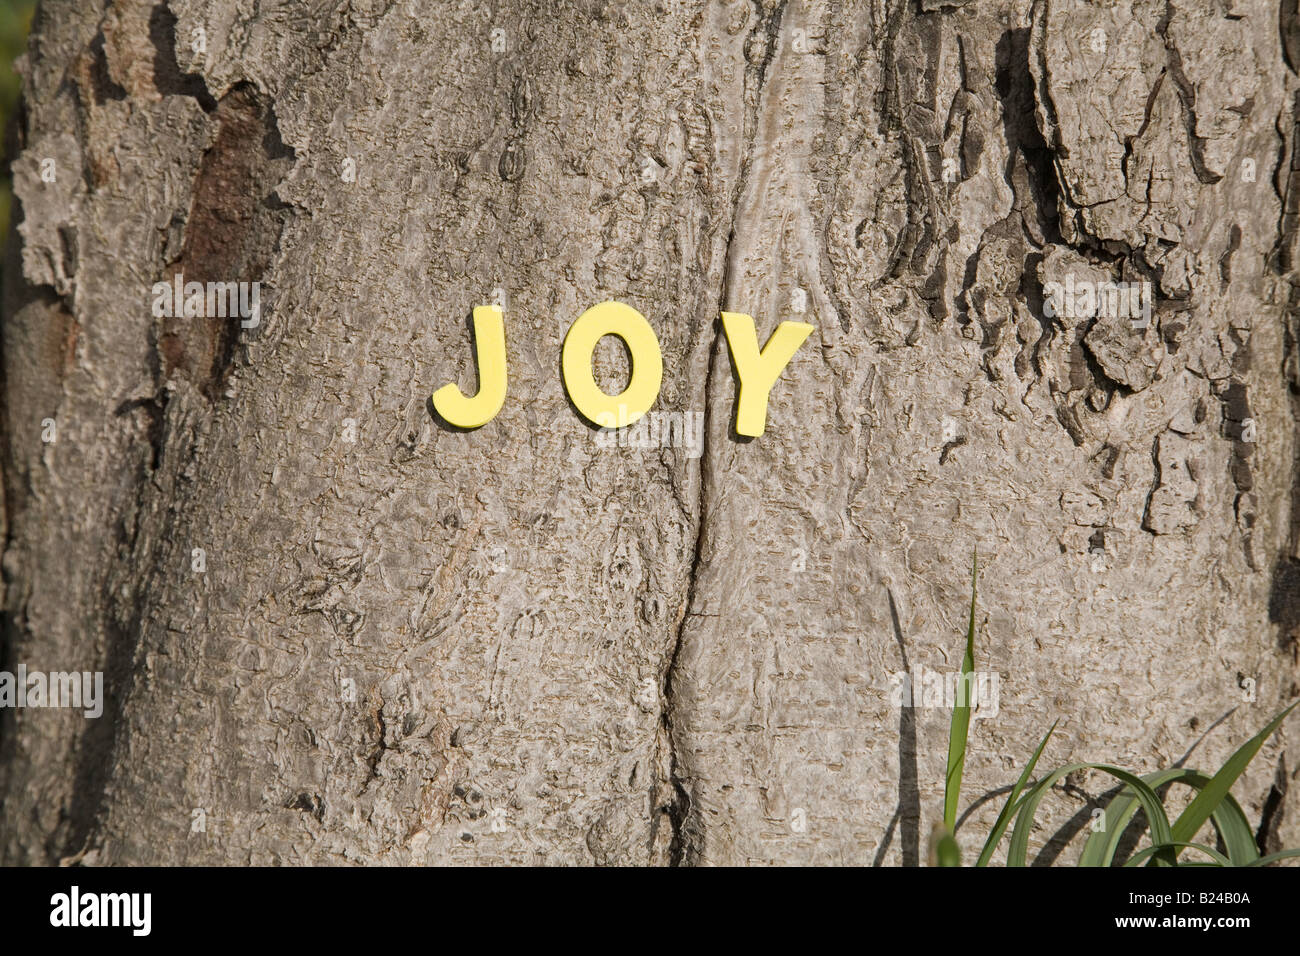 The word joy on a tree trunk - Stock Image